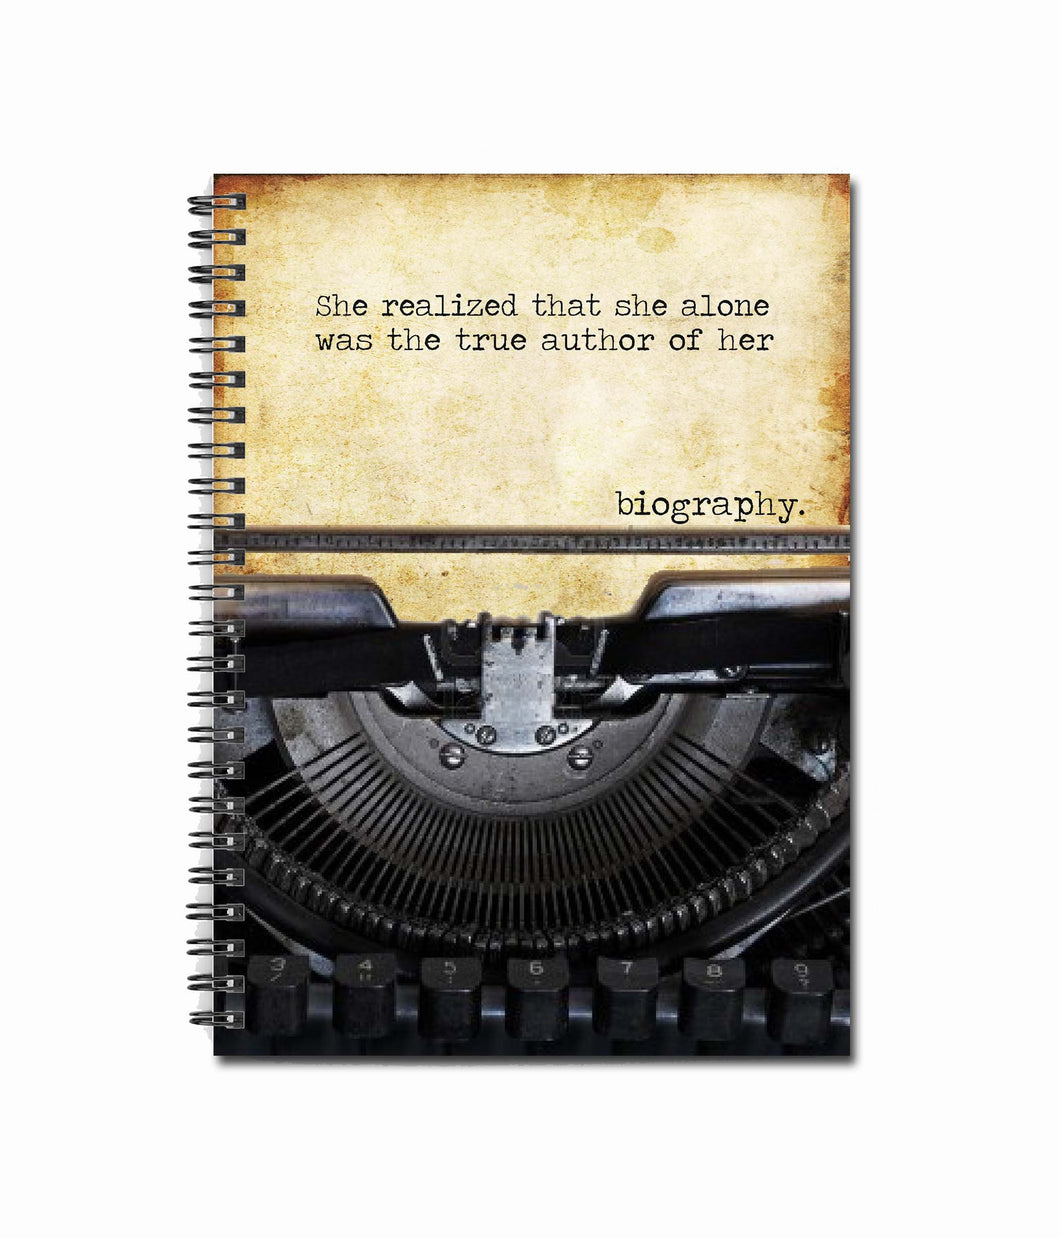 She realized that she alone was the true author of her biography 80 page Note Book - Vintage Typewriter - Feminism - Female Empowerment